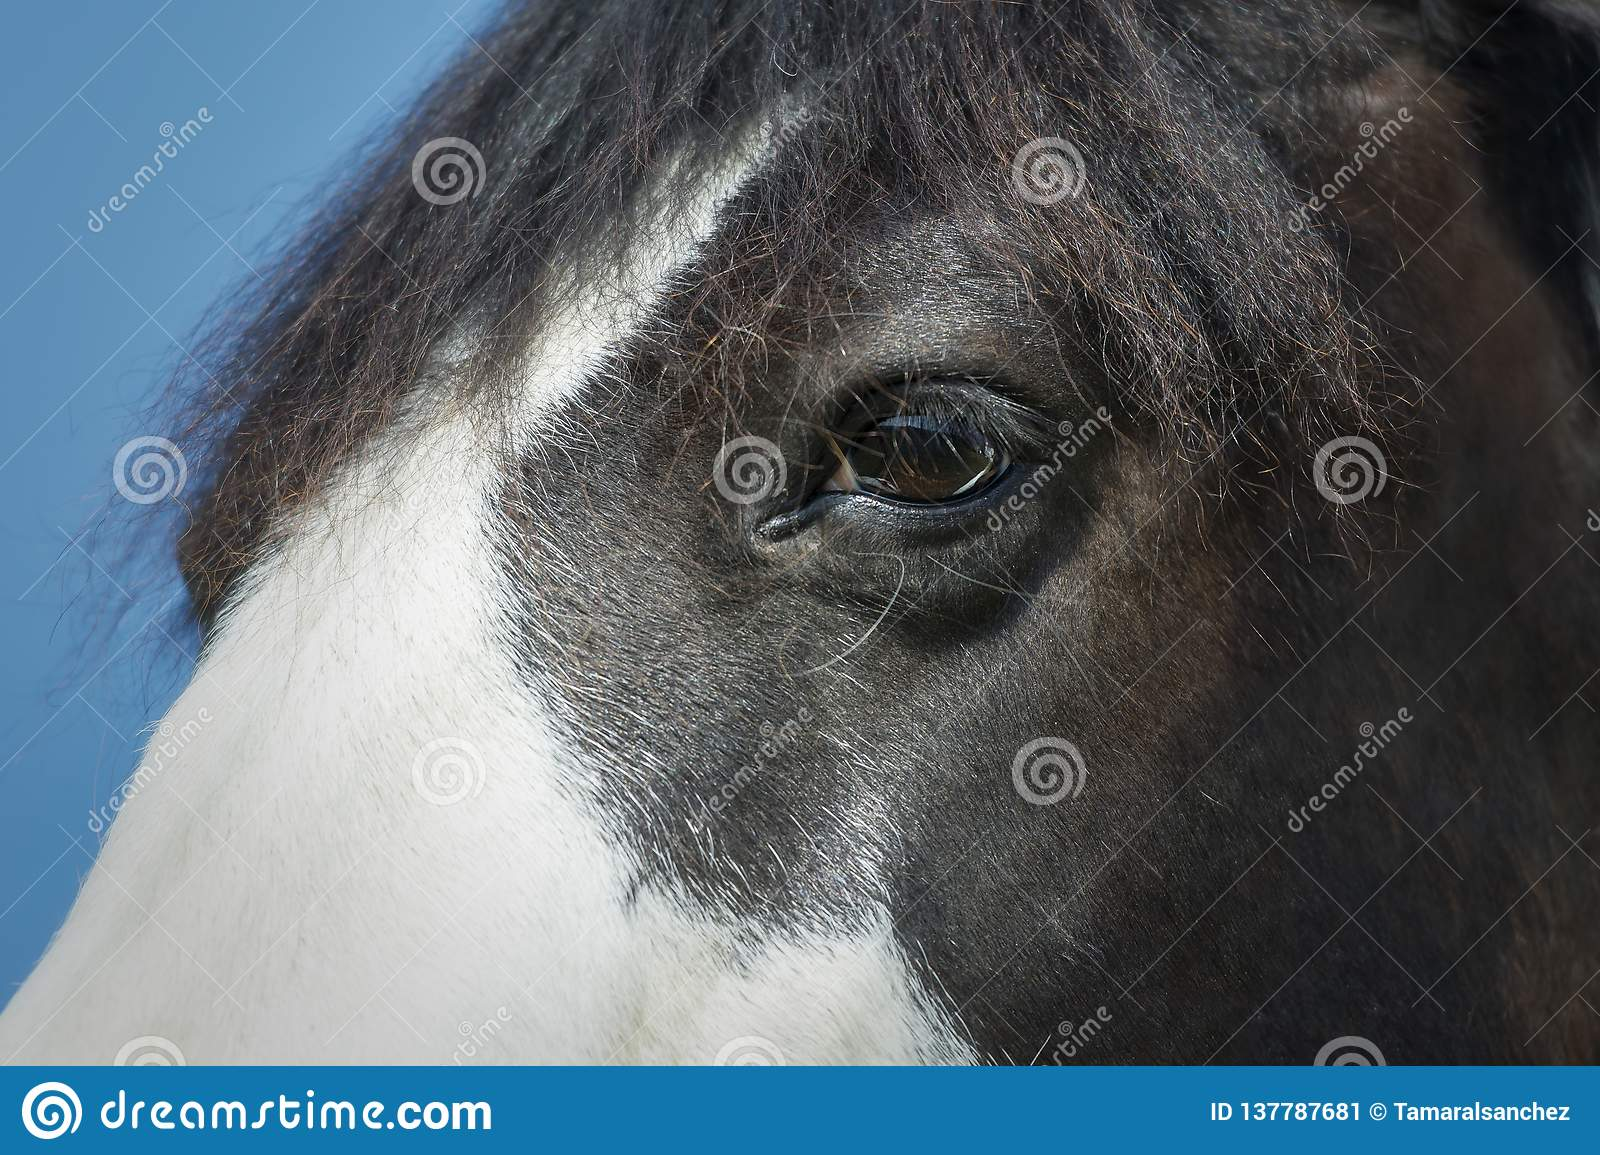 Close-up of a black and white paint horse eye